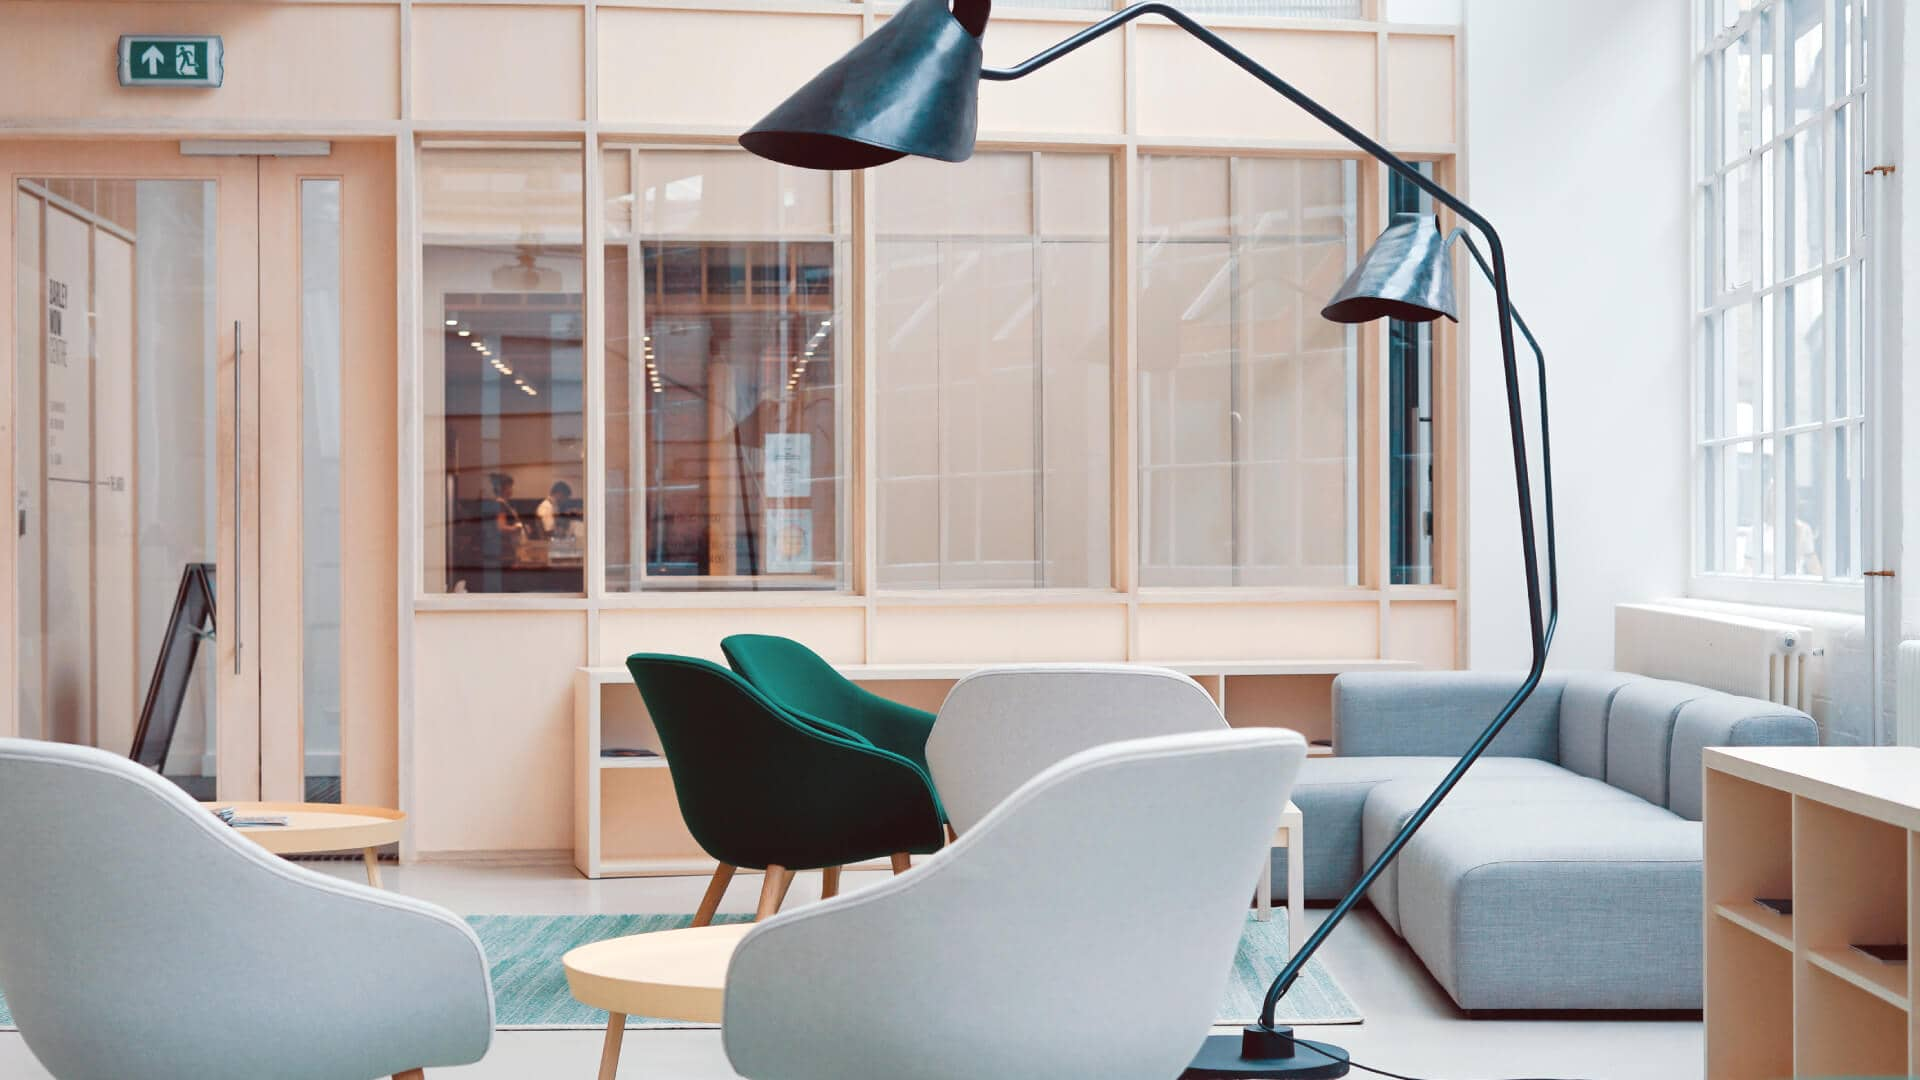 office interior design example with grey chairs and black lamps